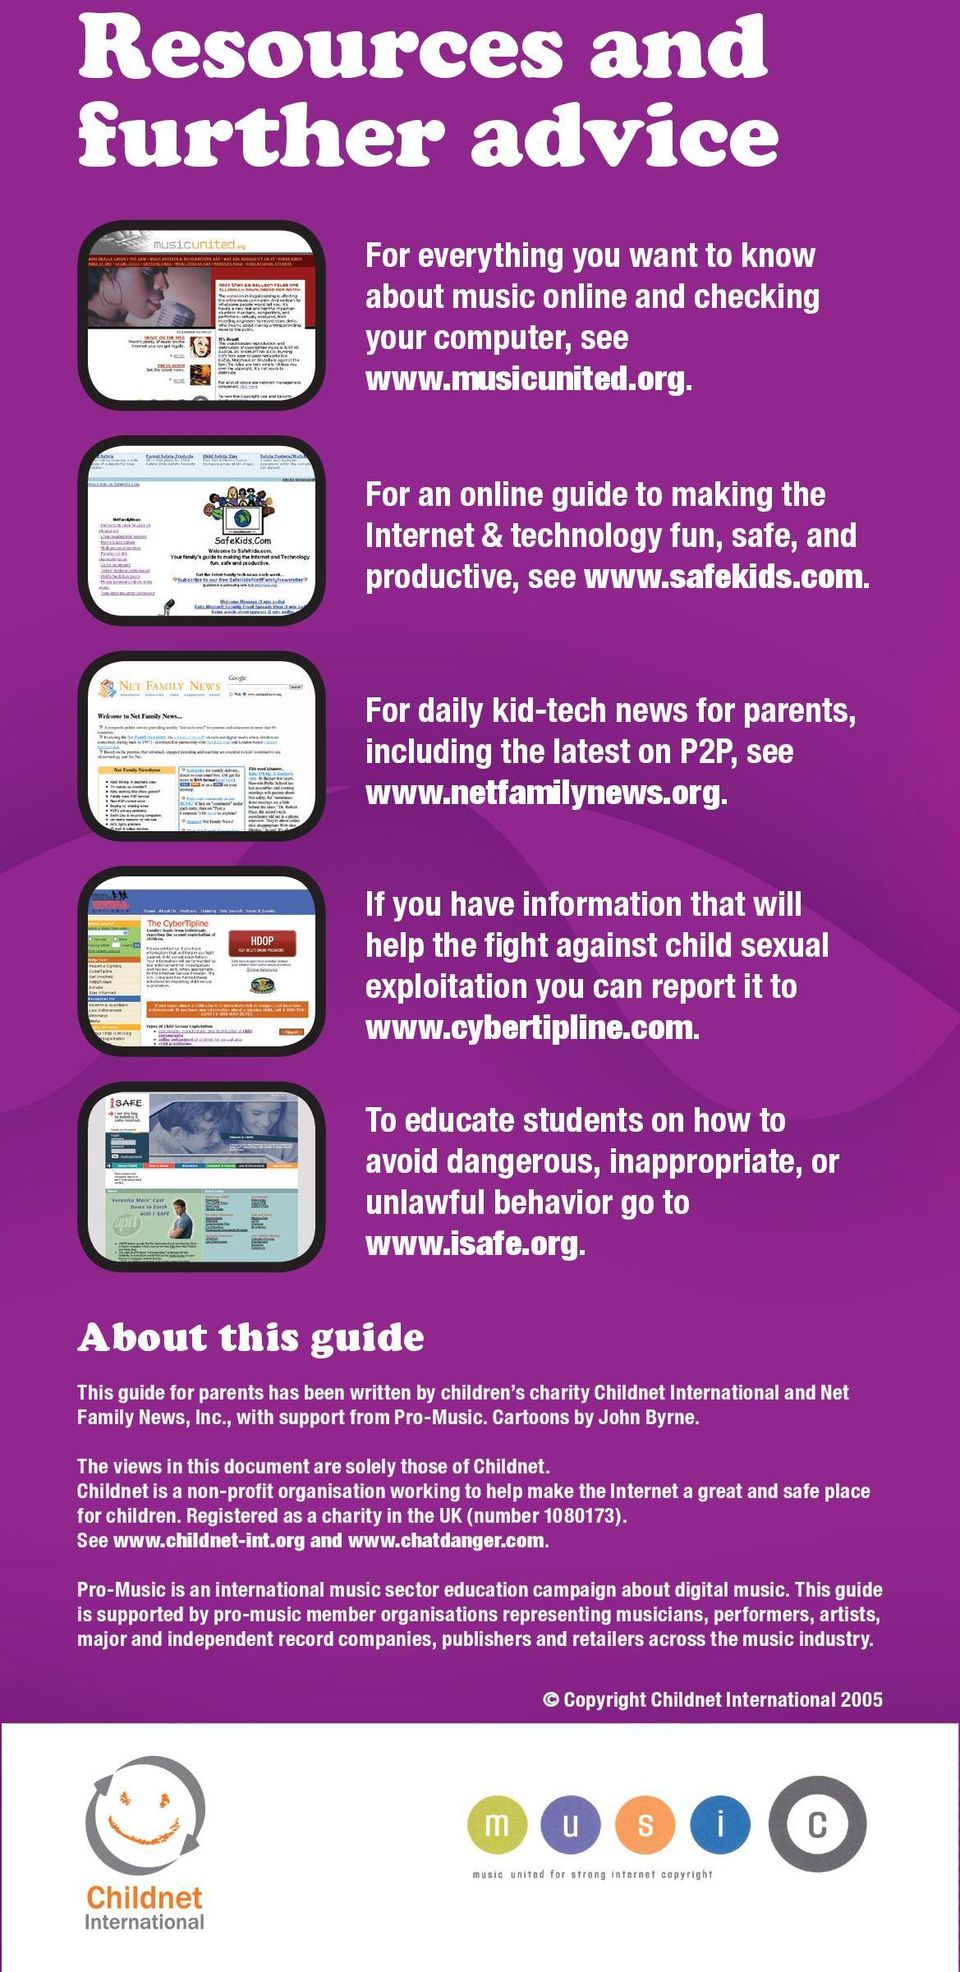 About this guide If you have information that will help the fight against child sexual exploitation you can report it to www.cybertipline.com.